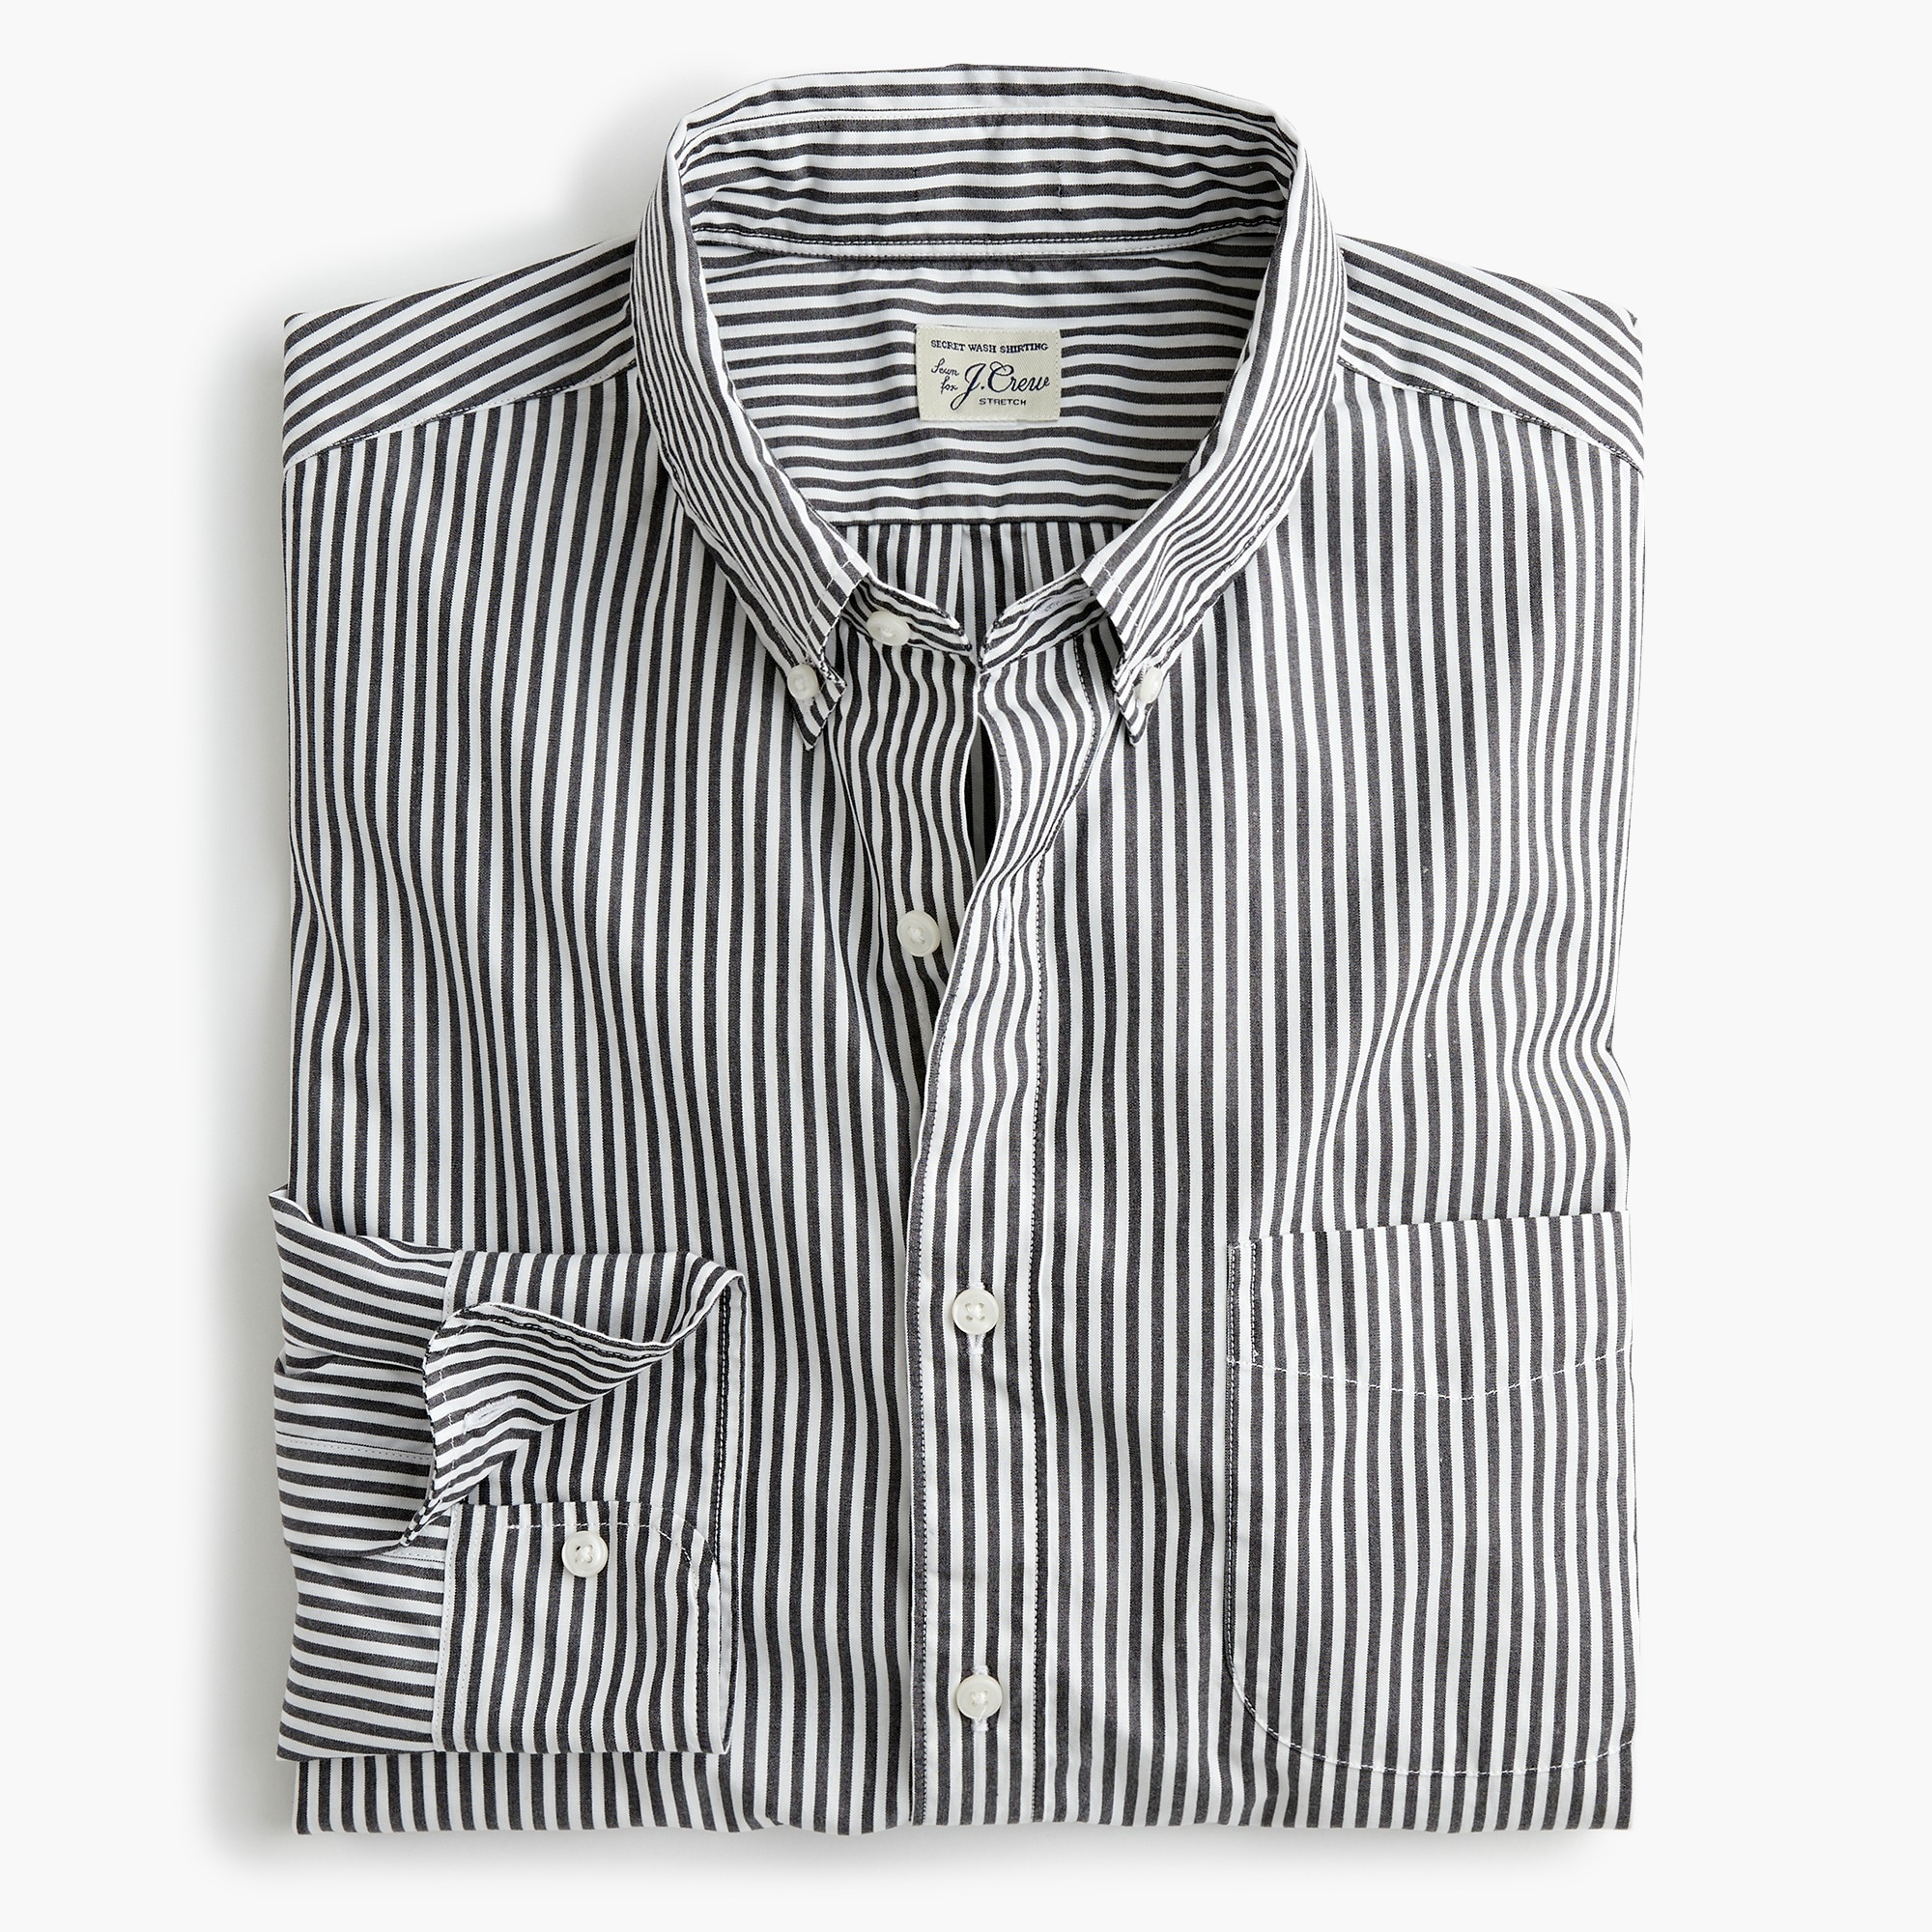 mens Untucked stretch Secret Wash shirt in poplin